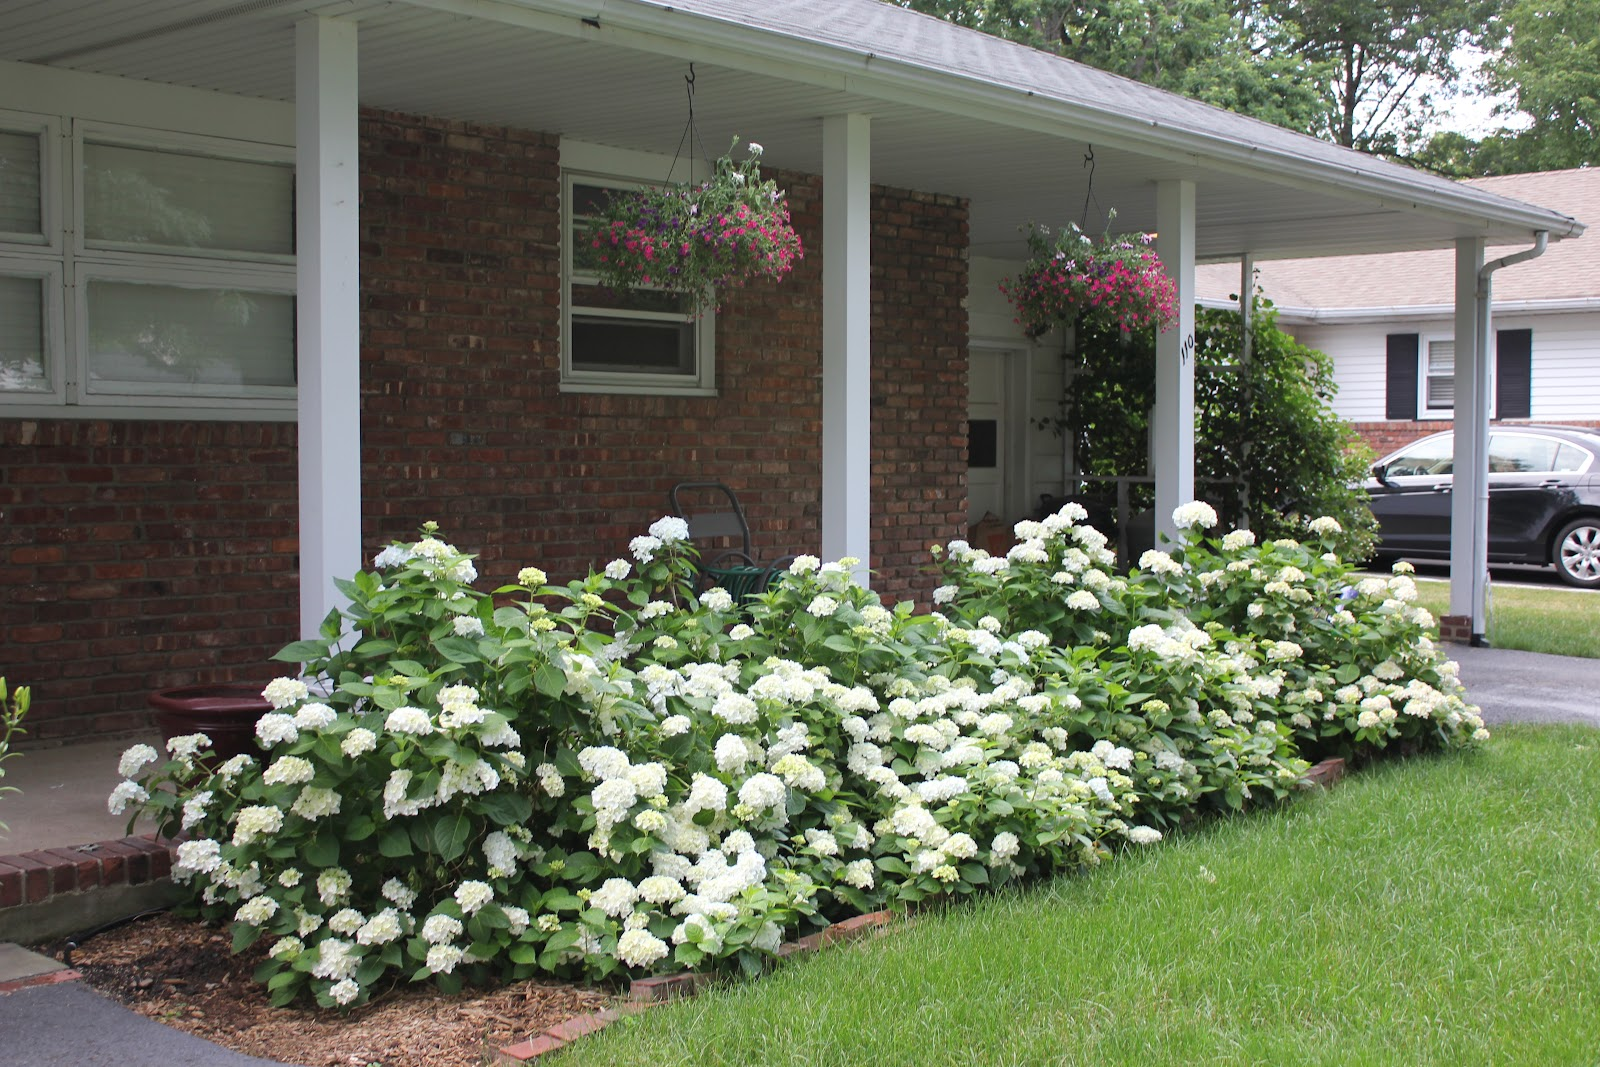 Garden state roses it 39 s all about layering for How to plant bushes in front of house